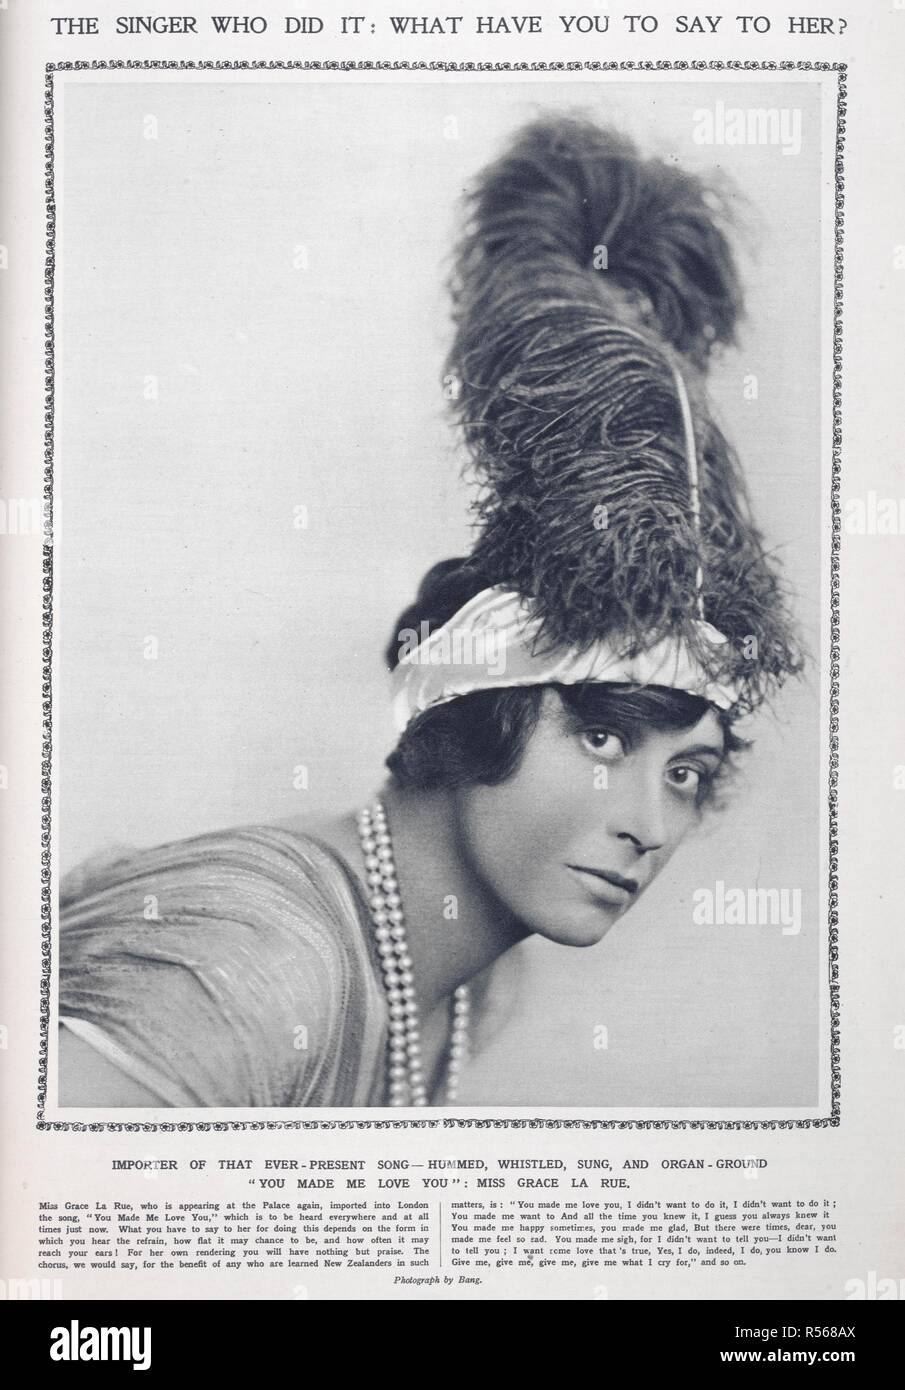 The singer who did it : what have you to say to her?' Miss Grace La Rue. Photograph by 'Bang'.  Grace La Rue (April 23, 1882 - March 13, 1956) was an American actress, singer, and Vaudeville headliner. The Sketch. London, 19. Source: The Sketch, 19 November 1913, page 9. - Stock Image